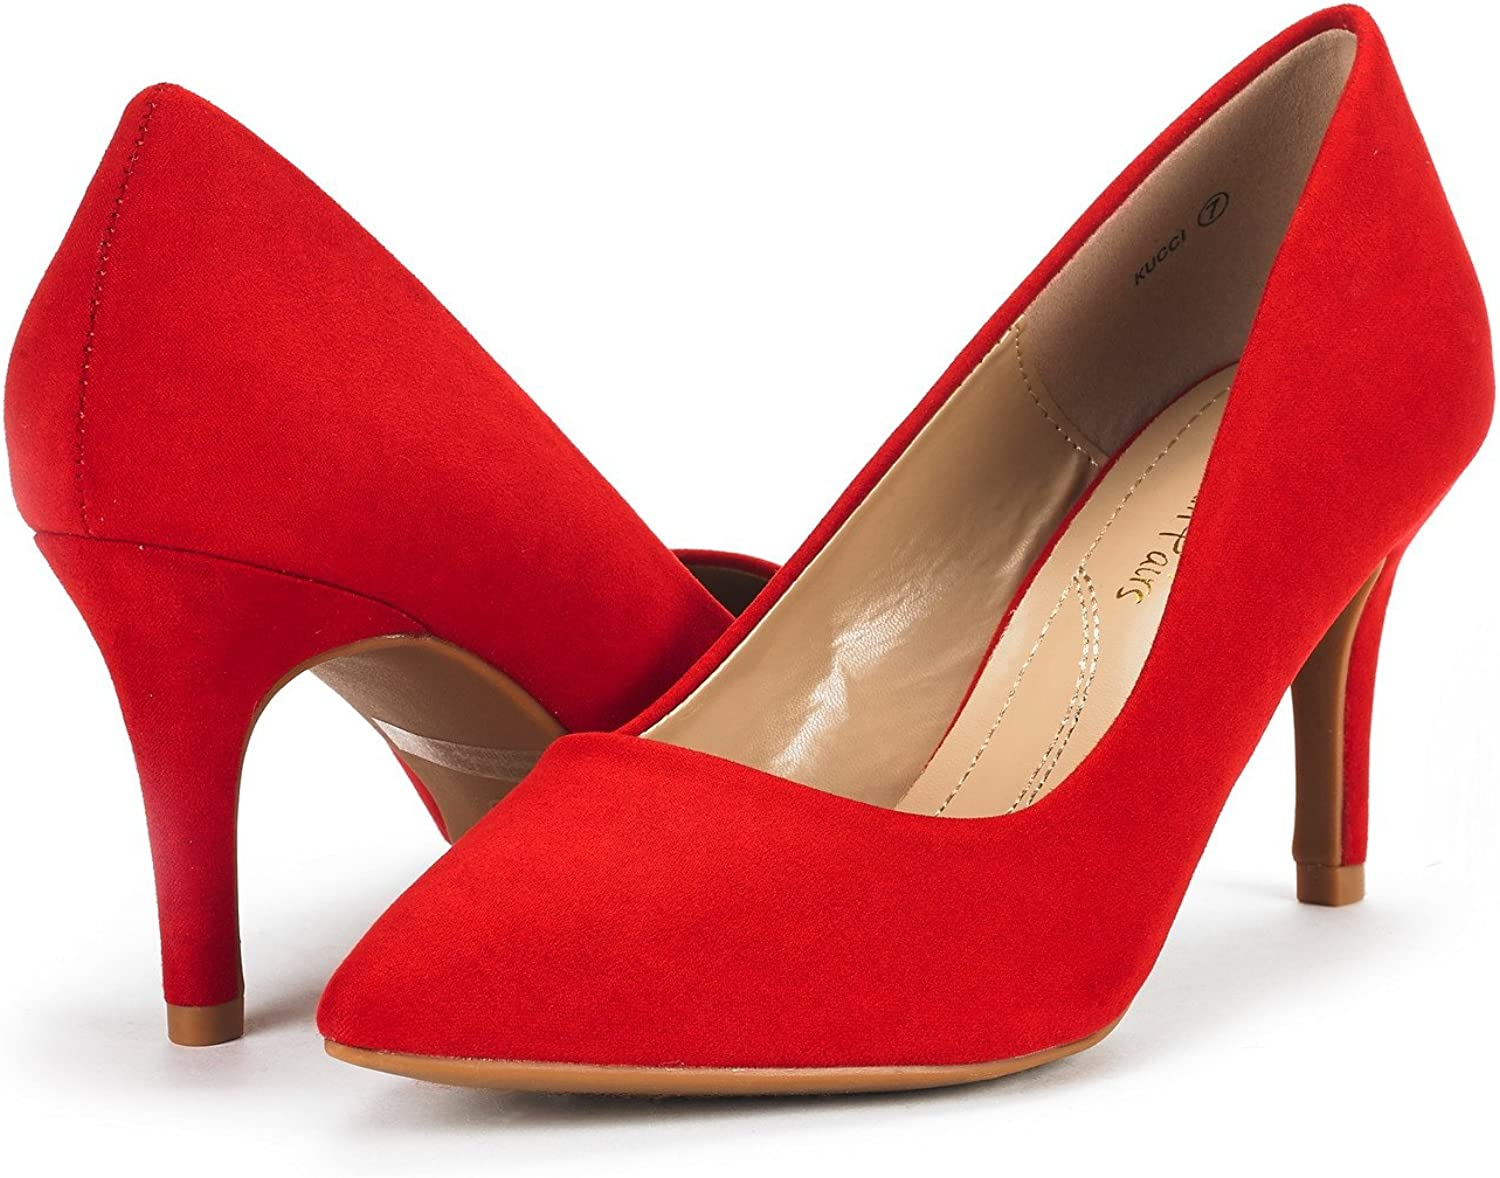 DREAM PAIRS Womens Kucci Classic Fashion Pointed Toe High Heel Dress Pumps Shoes